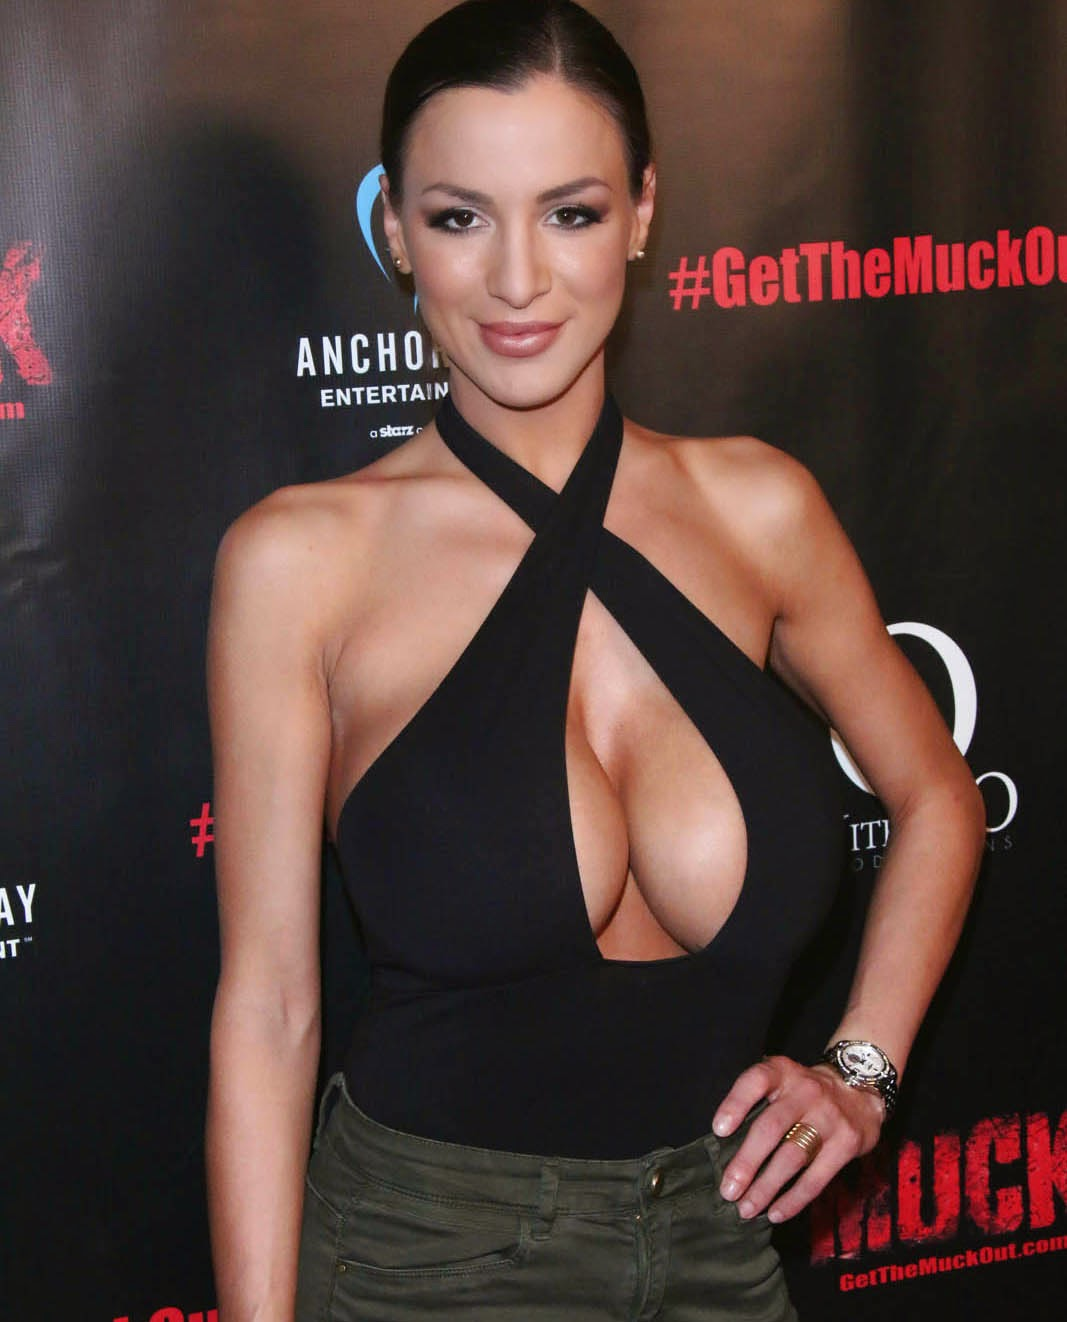 Jordan Carver And Her Eighth Wonders Of The World